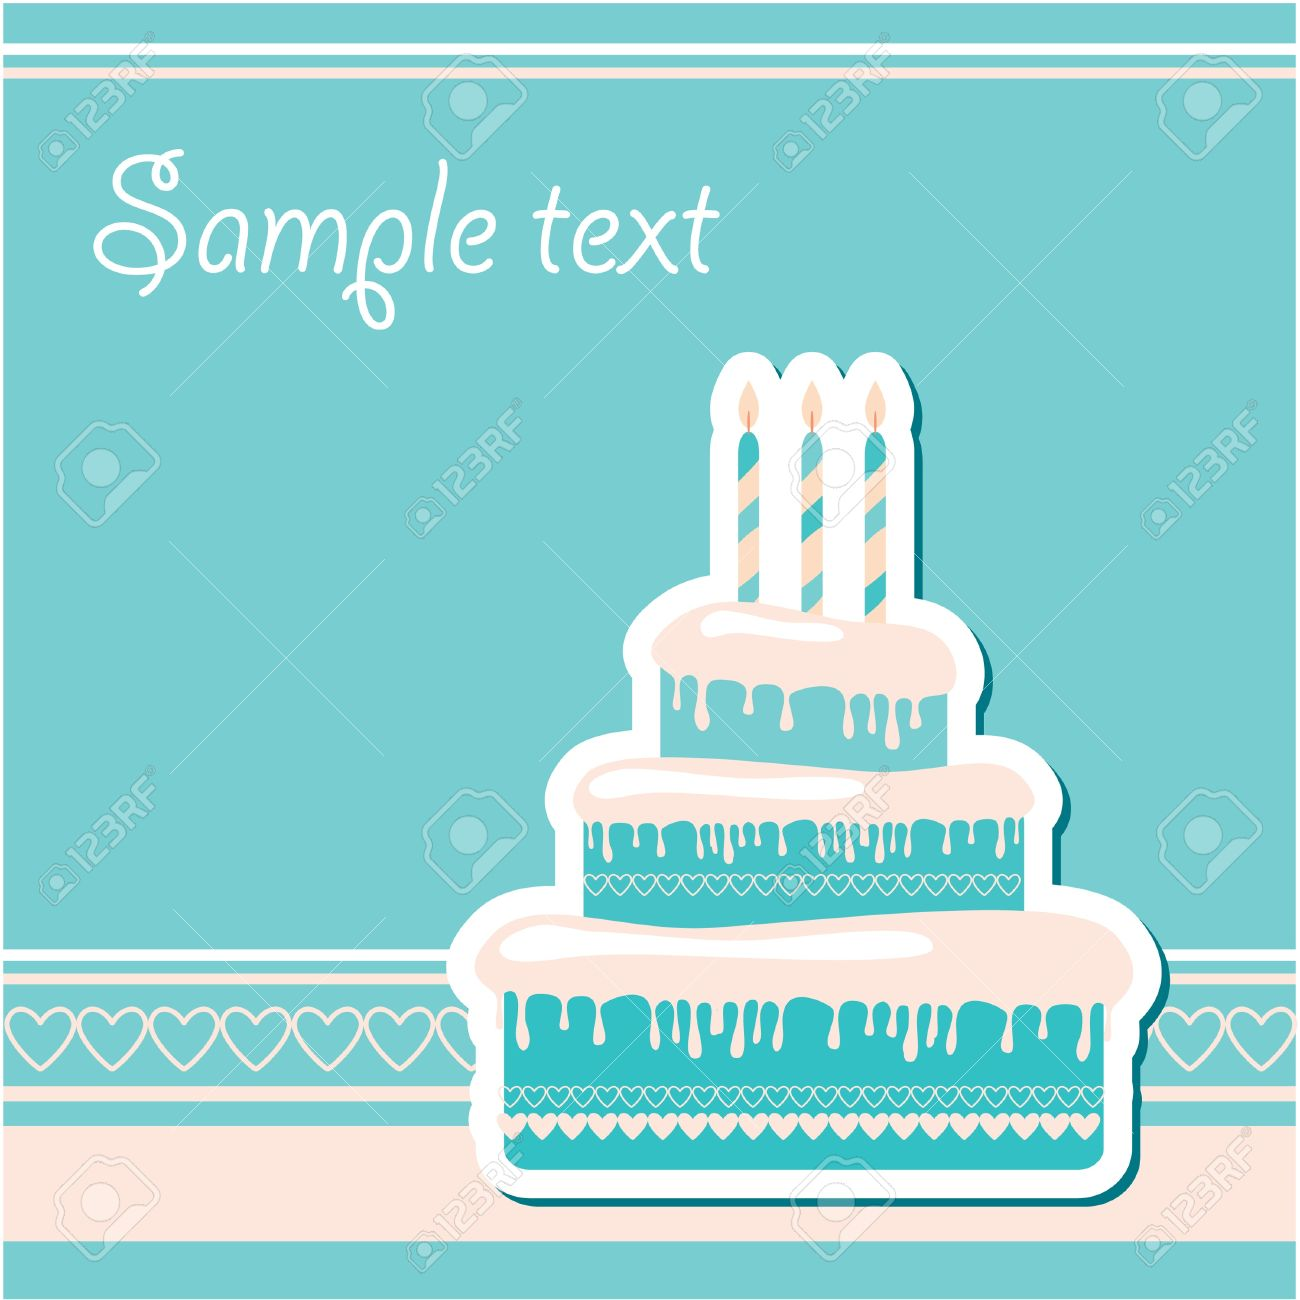 happy birthday insert photo free ; 9717352-template-frame-for-the-birthday-greetings-insert-your-text-